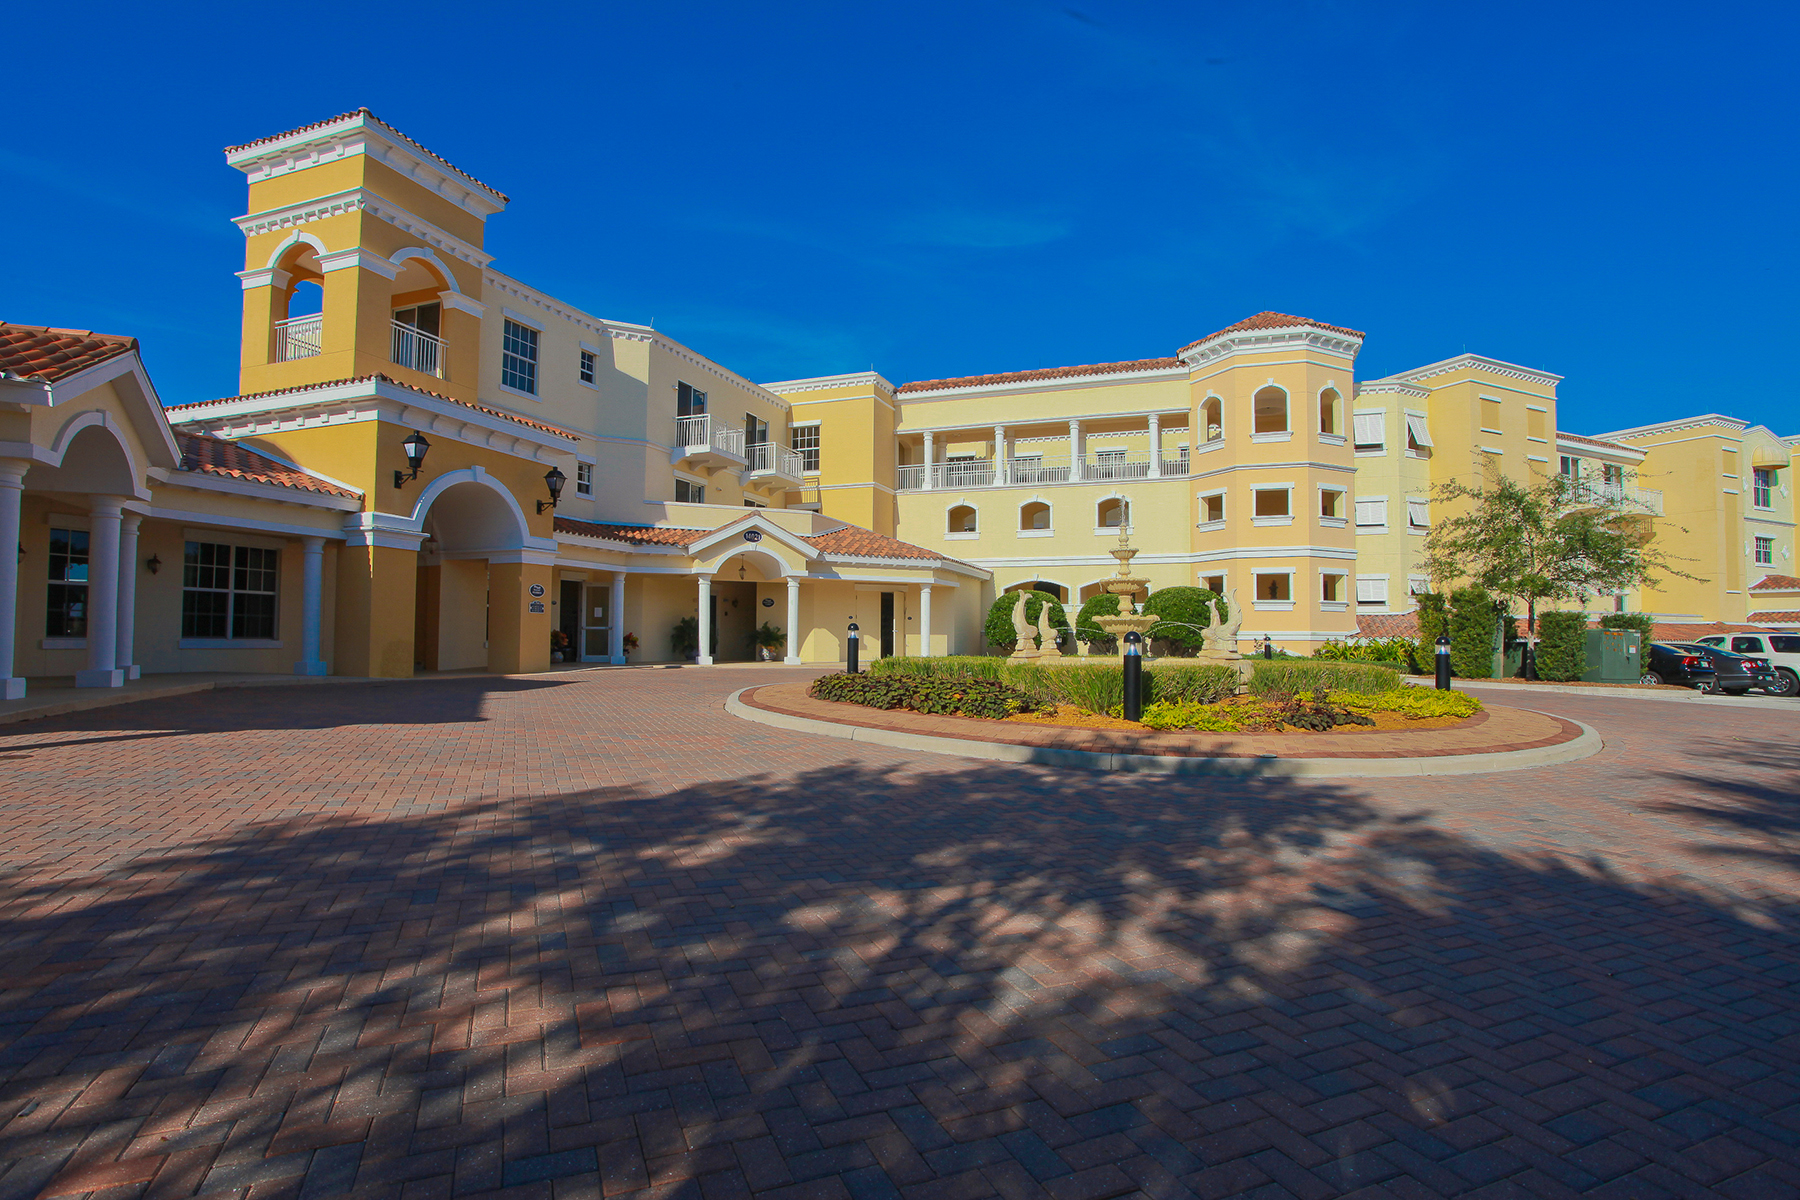 Condominium for Sale at VILLAS AT BELLAGIO HARBOR HOUSE 14021 Bellagio Way 401 Osprey, Florida, 34229 United States